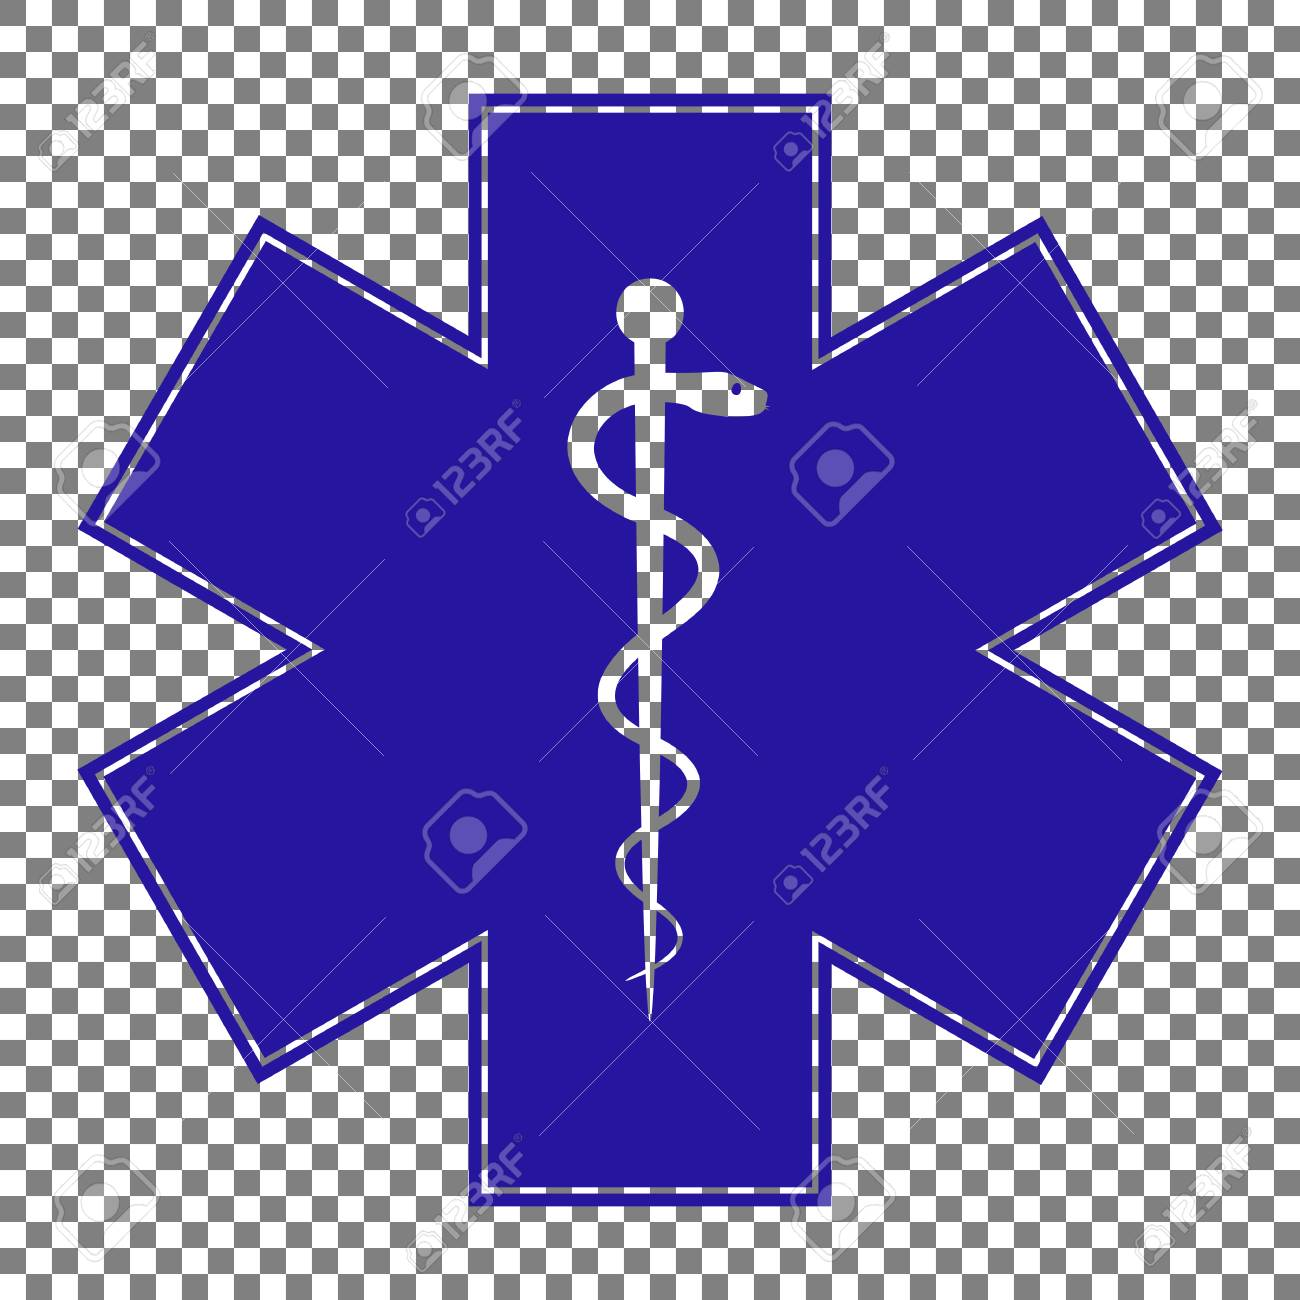 Medical Symbol Of The Emergency Or Star Of Life Blue Icon On